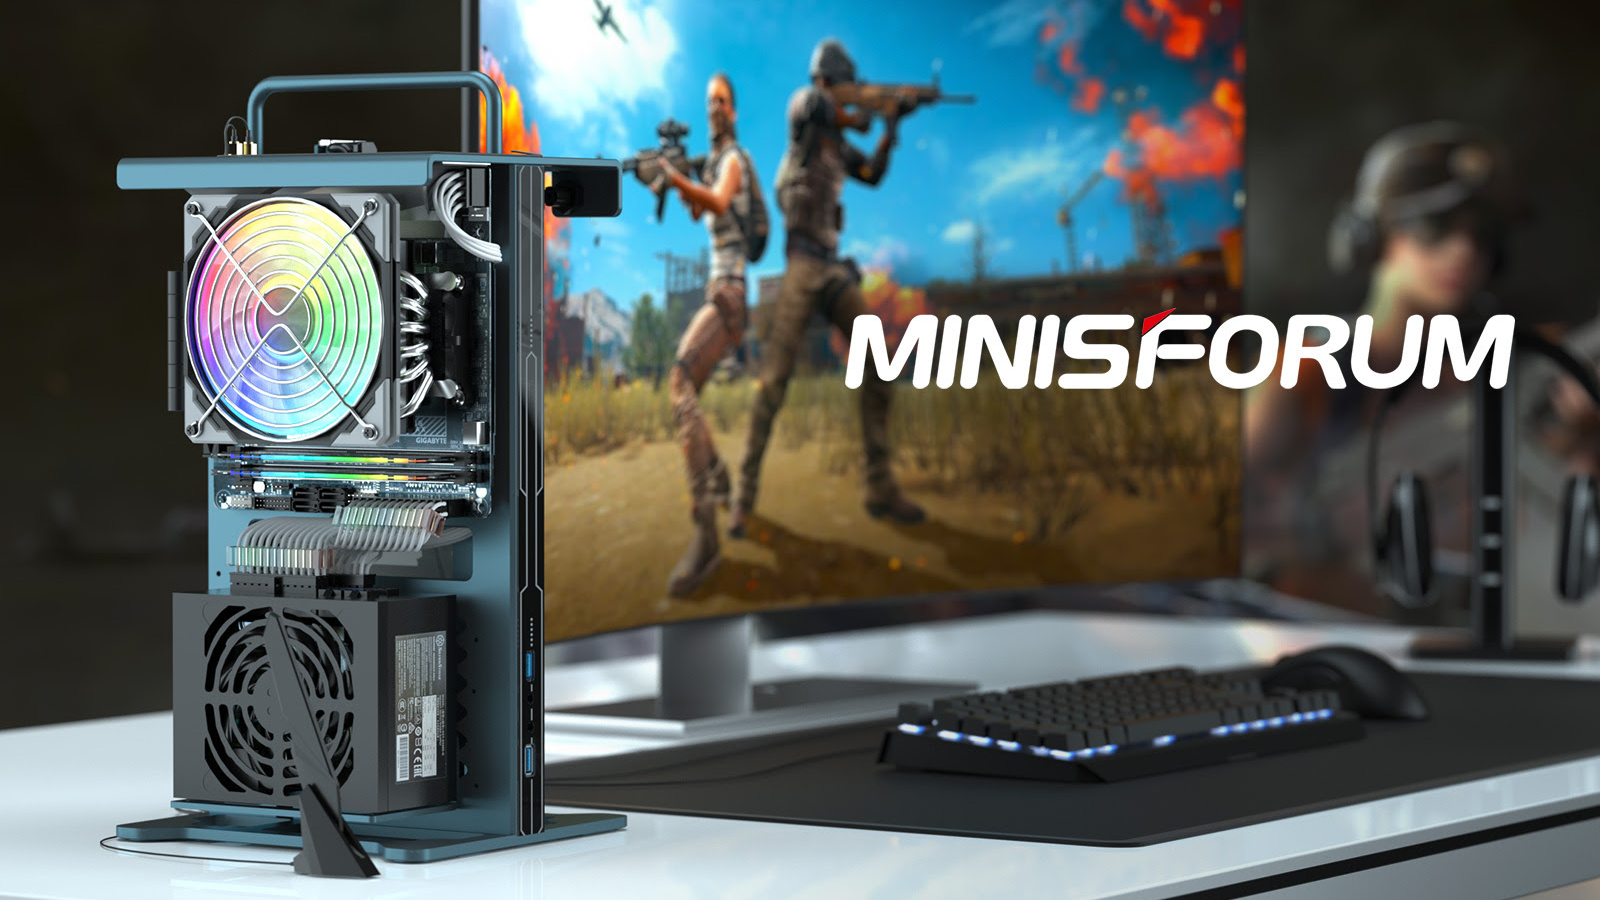 Minisforum Open Air Mini Gaming PC Is All AMD With Ryzen 5 5600X, Radeon RX 6700 XT